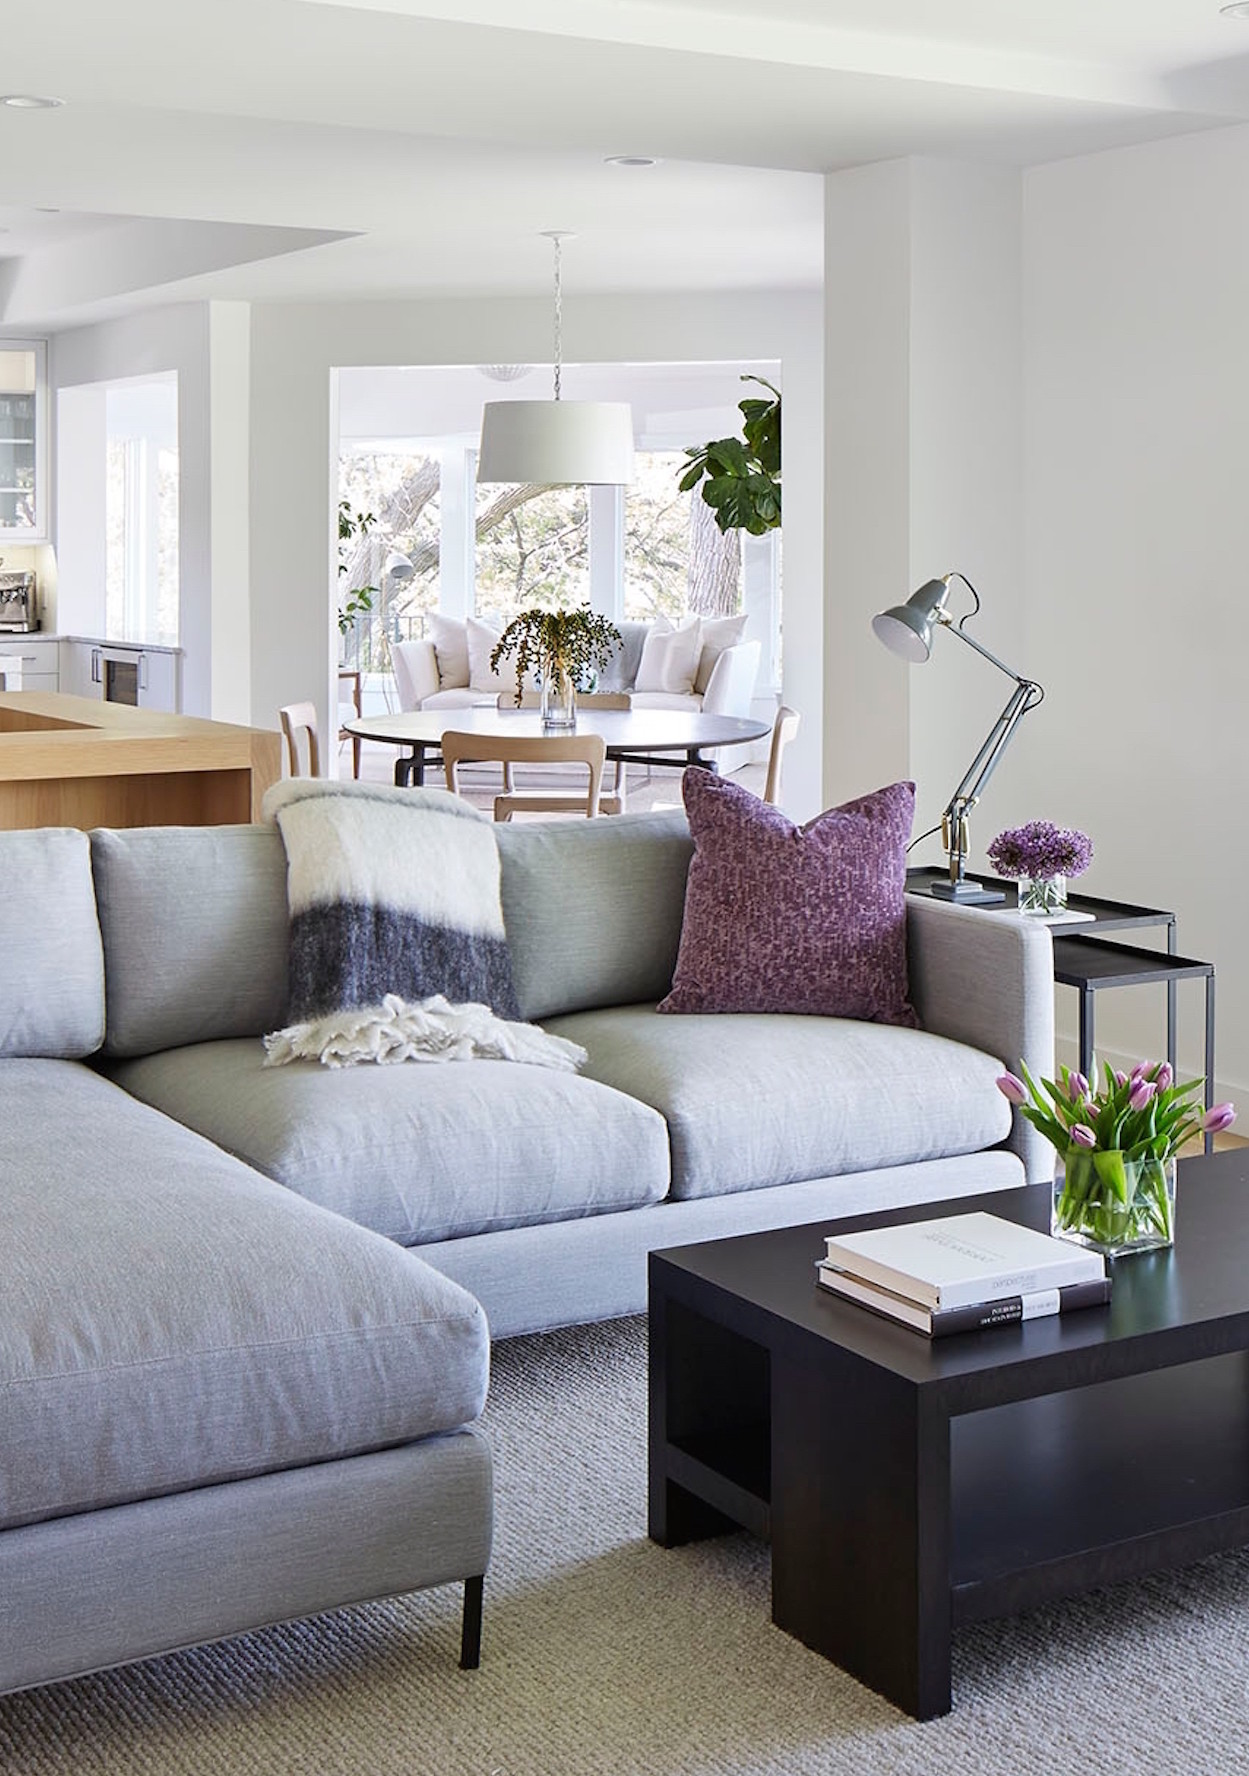 10 Rules To Keep In Mind When Decorating A Living Room Martha Stewart